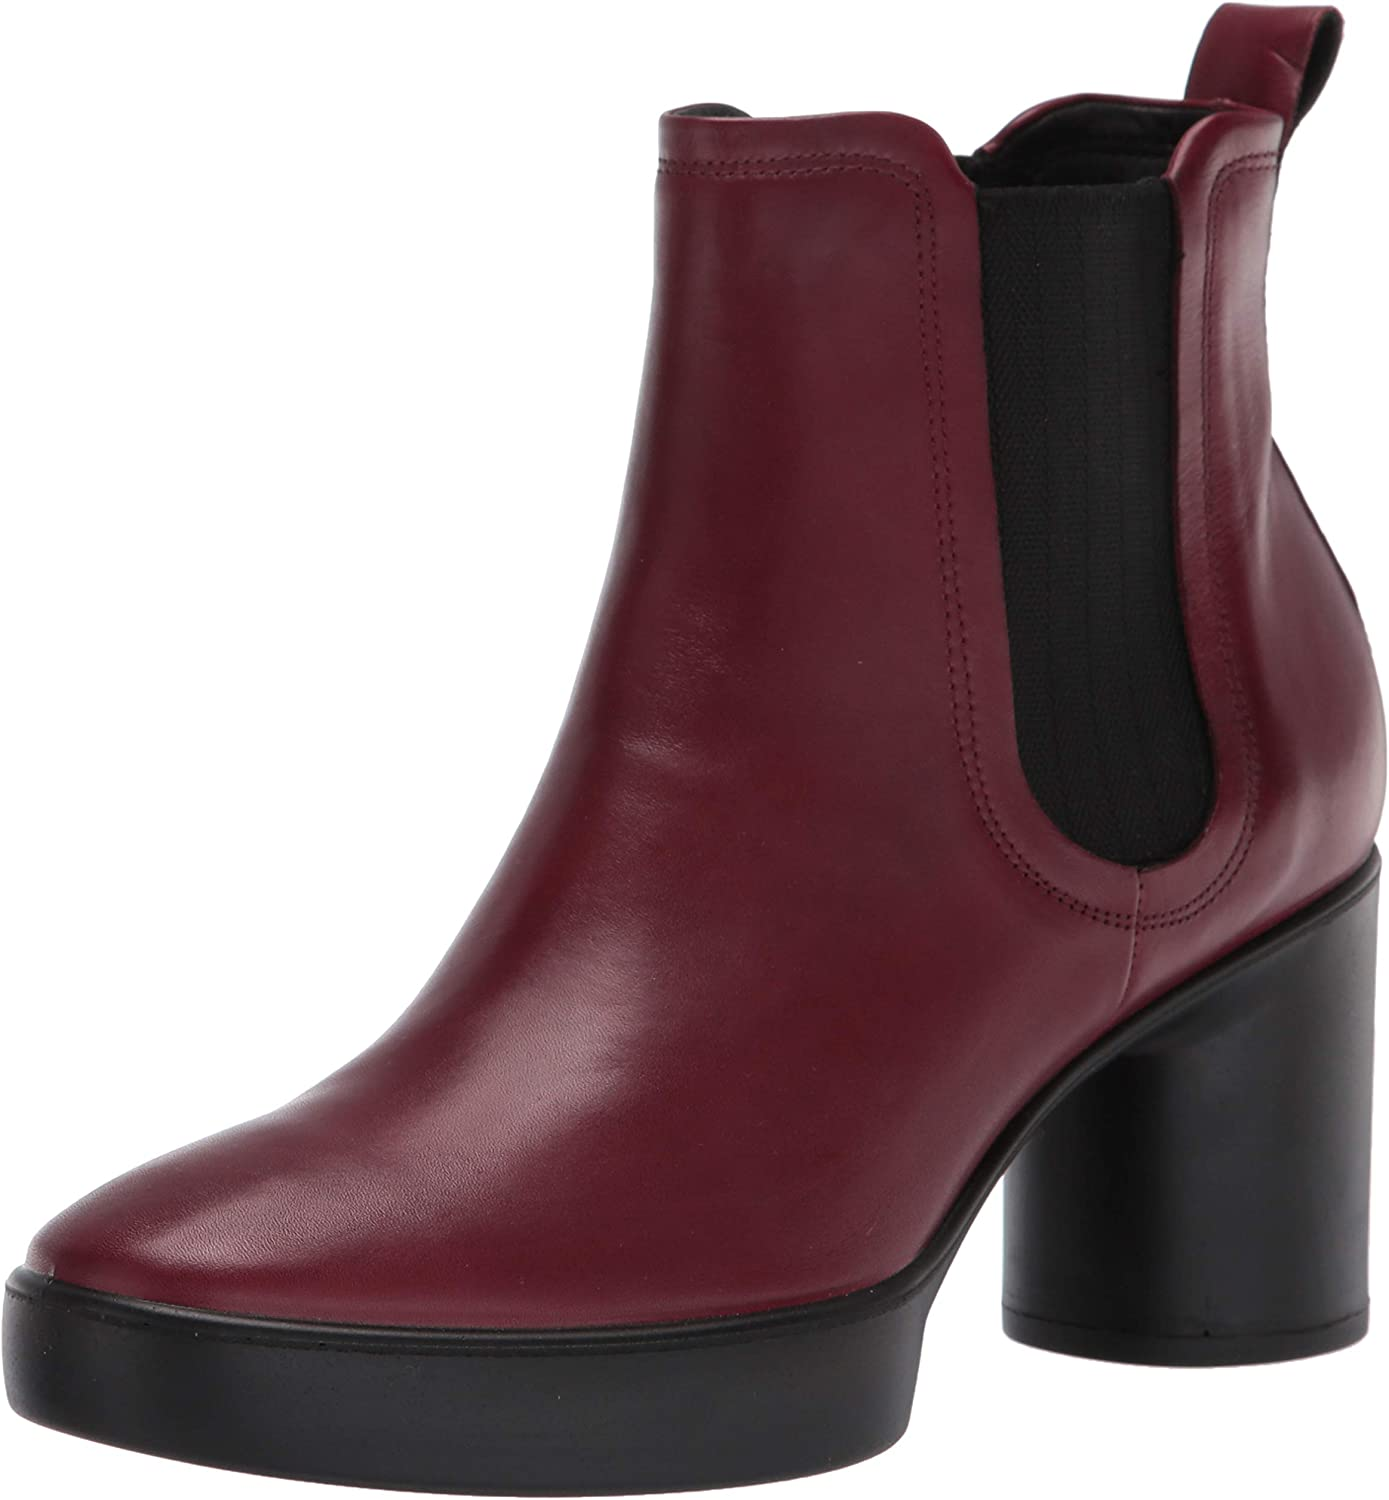 ECCO Women's Shape Sculpted Sale special price We OFFer at cheap prices Motion 55 Boot Chelsea Ankle